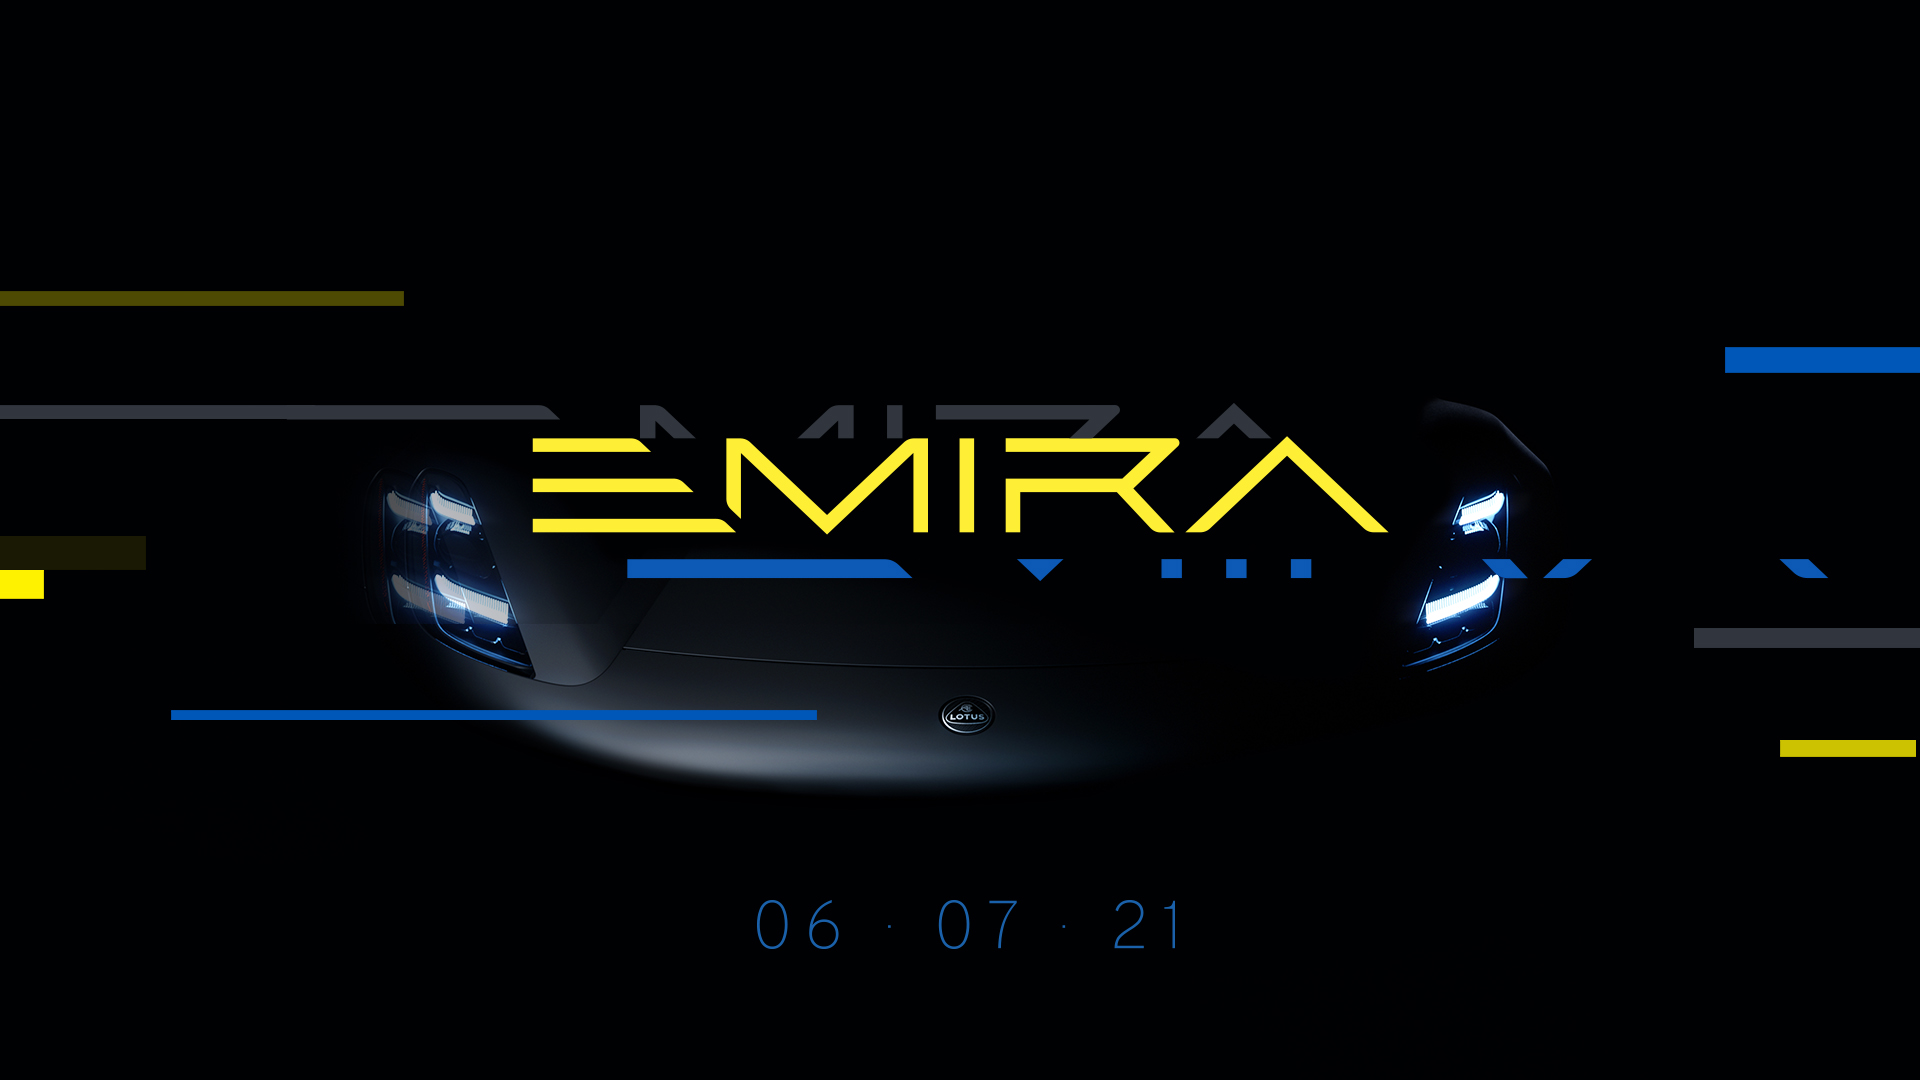 Lotus Type 131 – the all-new sports car is named EMIRA